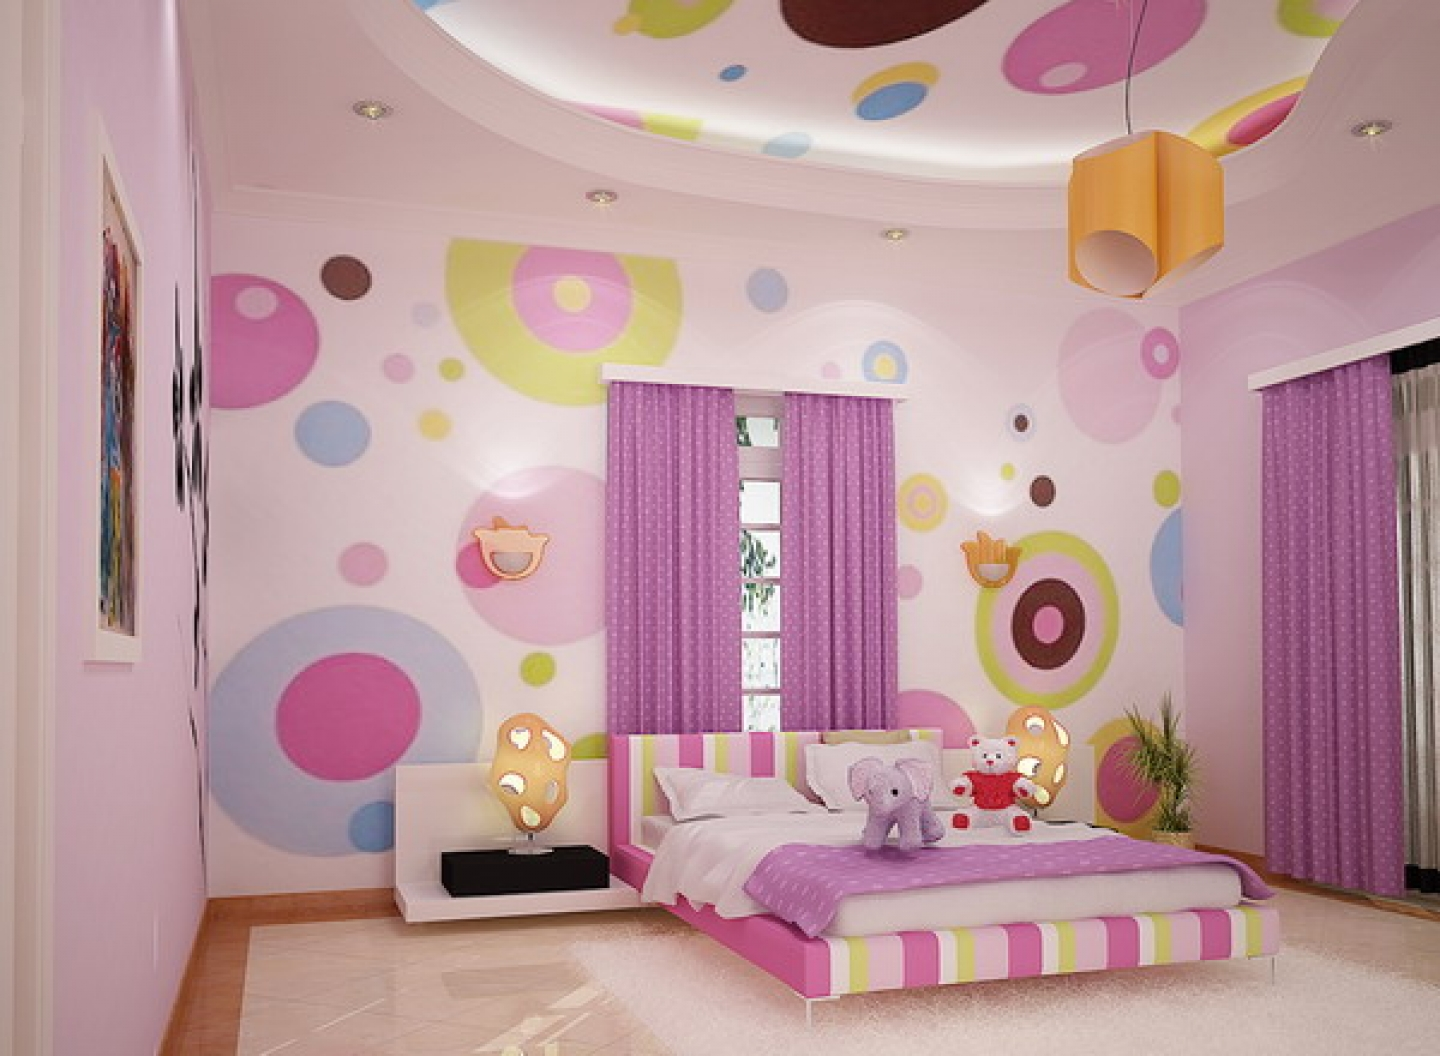 Polka Dots Wallpaper Bedroom Design (View 2 of 10)